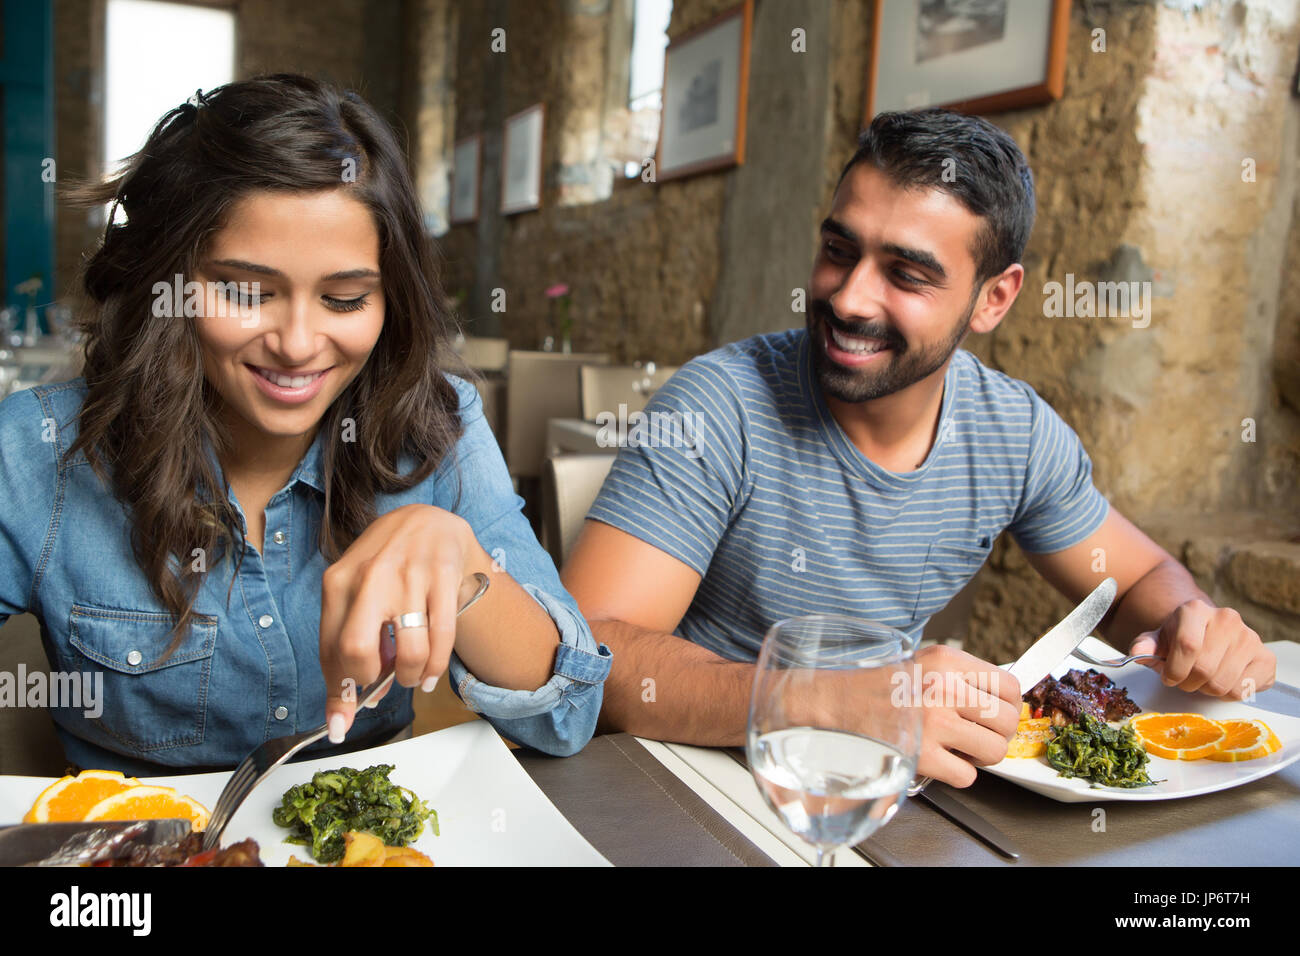 Couple having lunch at rustic gourmet restaurant - Stock Image